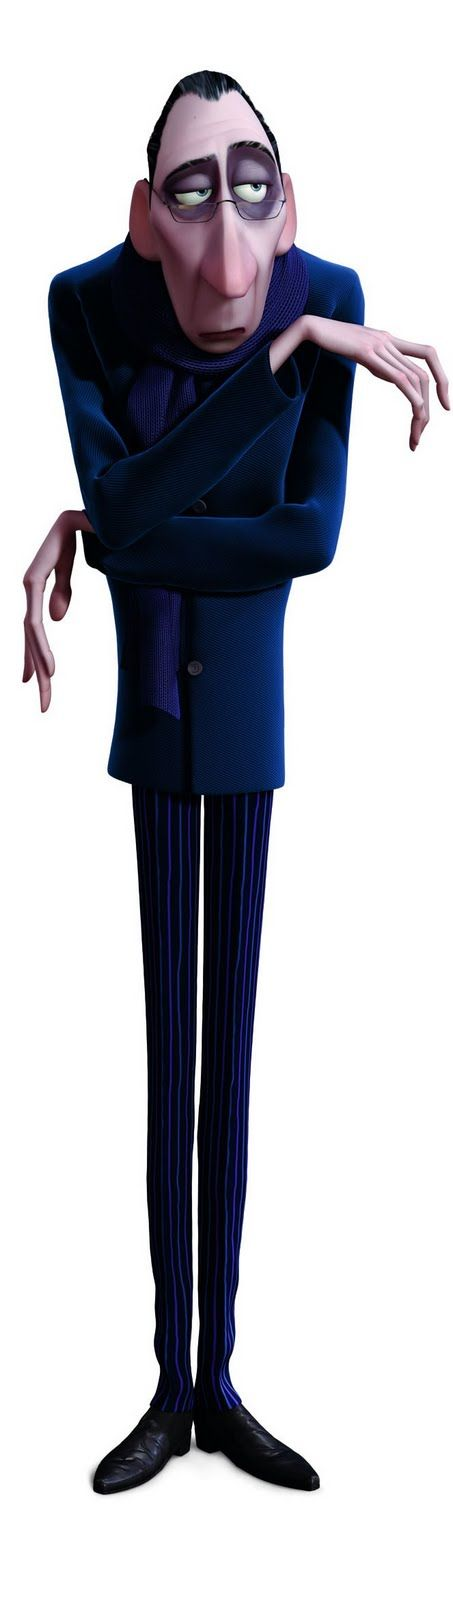 "Anton Ego is the secondary antagonist in Disney/Pixar's 2007 film Ratatouille. The name Ego is from the Latin meaning ""I"" or ""self"", but is now associated with egotism (narcissism) or egoism (self interest). This would allude to a certain level of vanity and arrogance on the part of Anton. He has nothing but contempt for the people around him combined with a cruel sense of humor and something of a sadistic streak. However, unlike Skinner, he is not presented as a man of pure evil. He shows…"